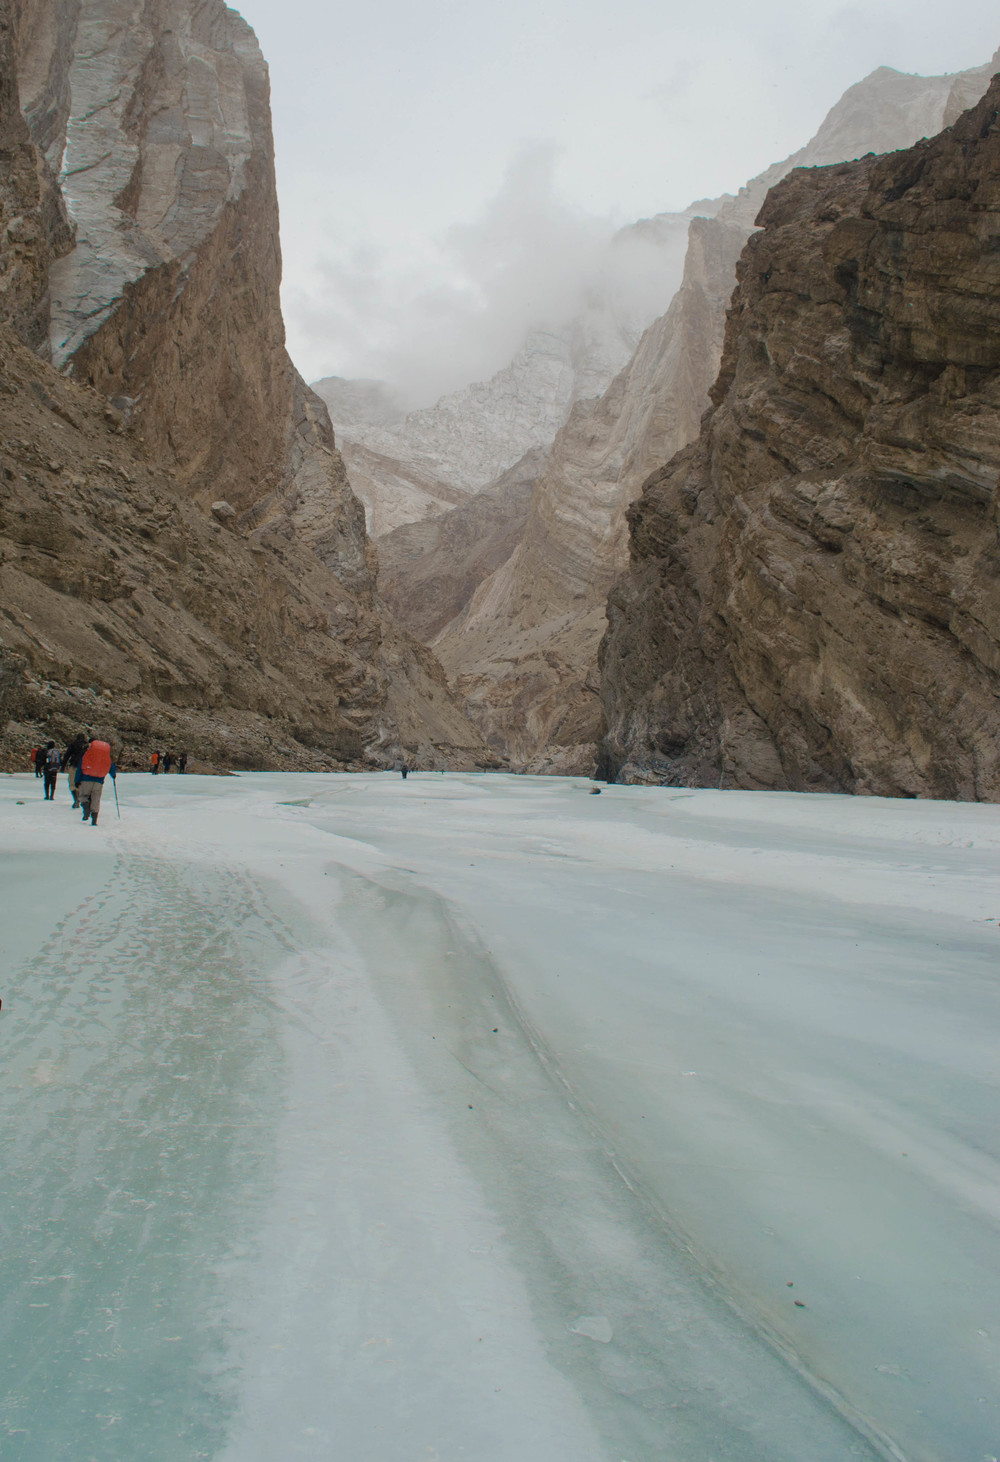 The landscape changed so quickly while we trekked... it looked like the frozen gateway to the perilous winter road had opened iin ladakh. PC: Raunak